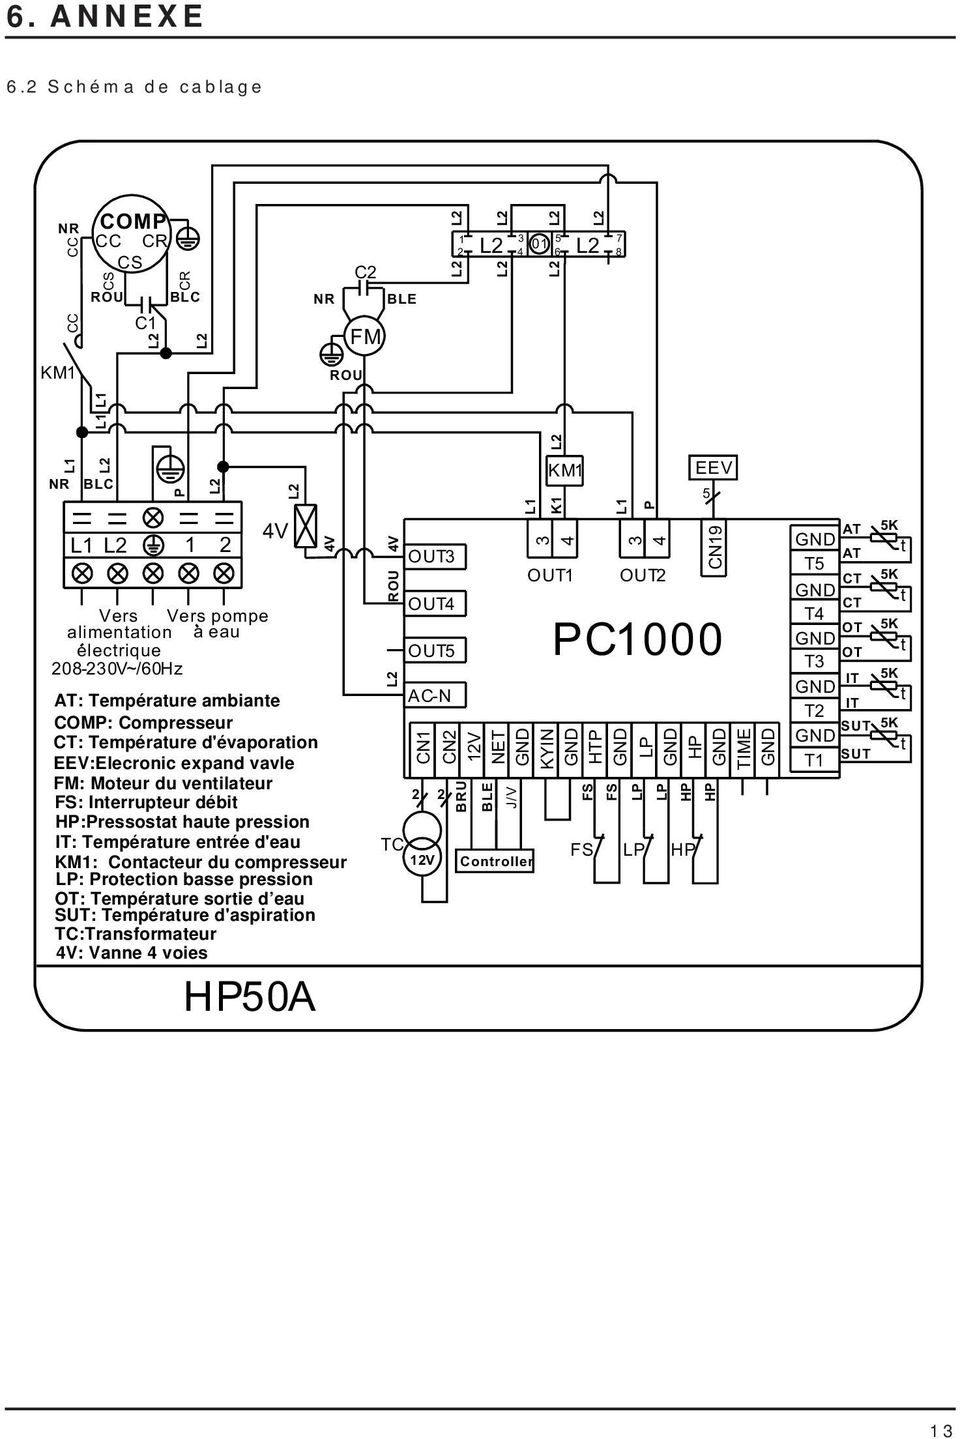 Honda Cr 85 Schema Cablage Auto Electrical Wiring Diagram Opel Astra G Pdf Thermopompe Pour Piscine Manuel D U0026 39 Instructions Et